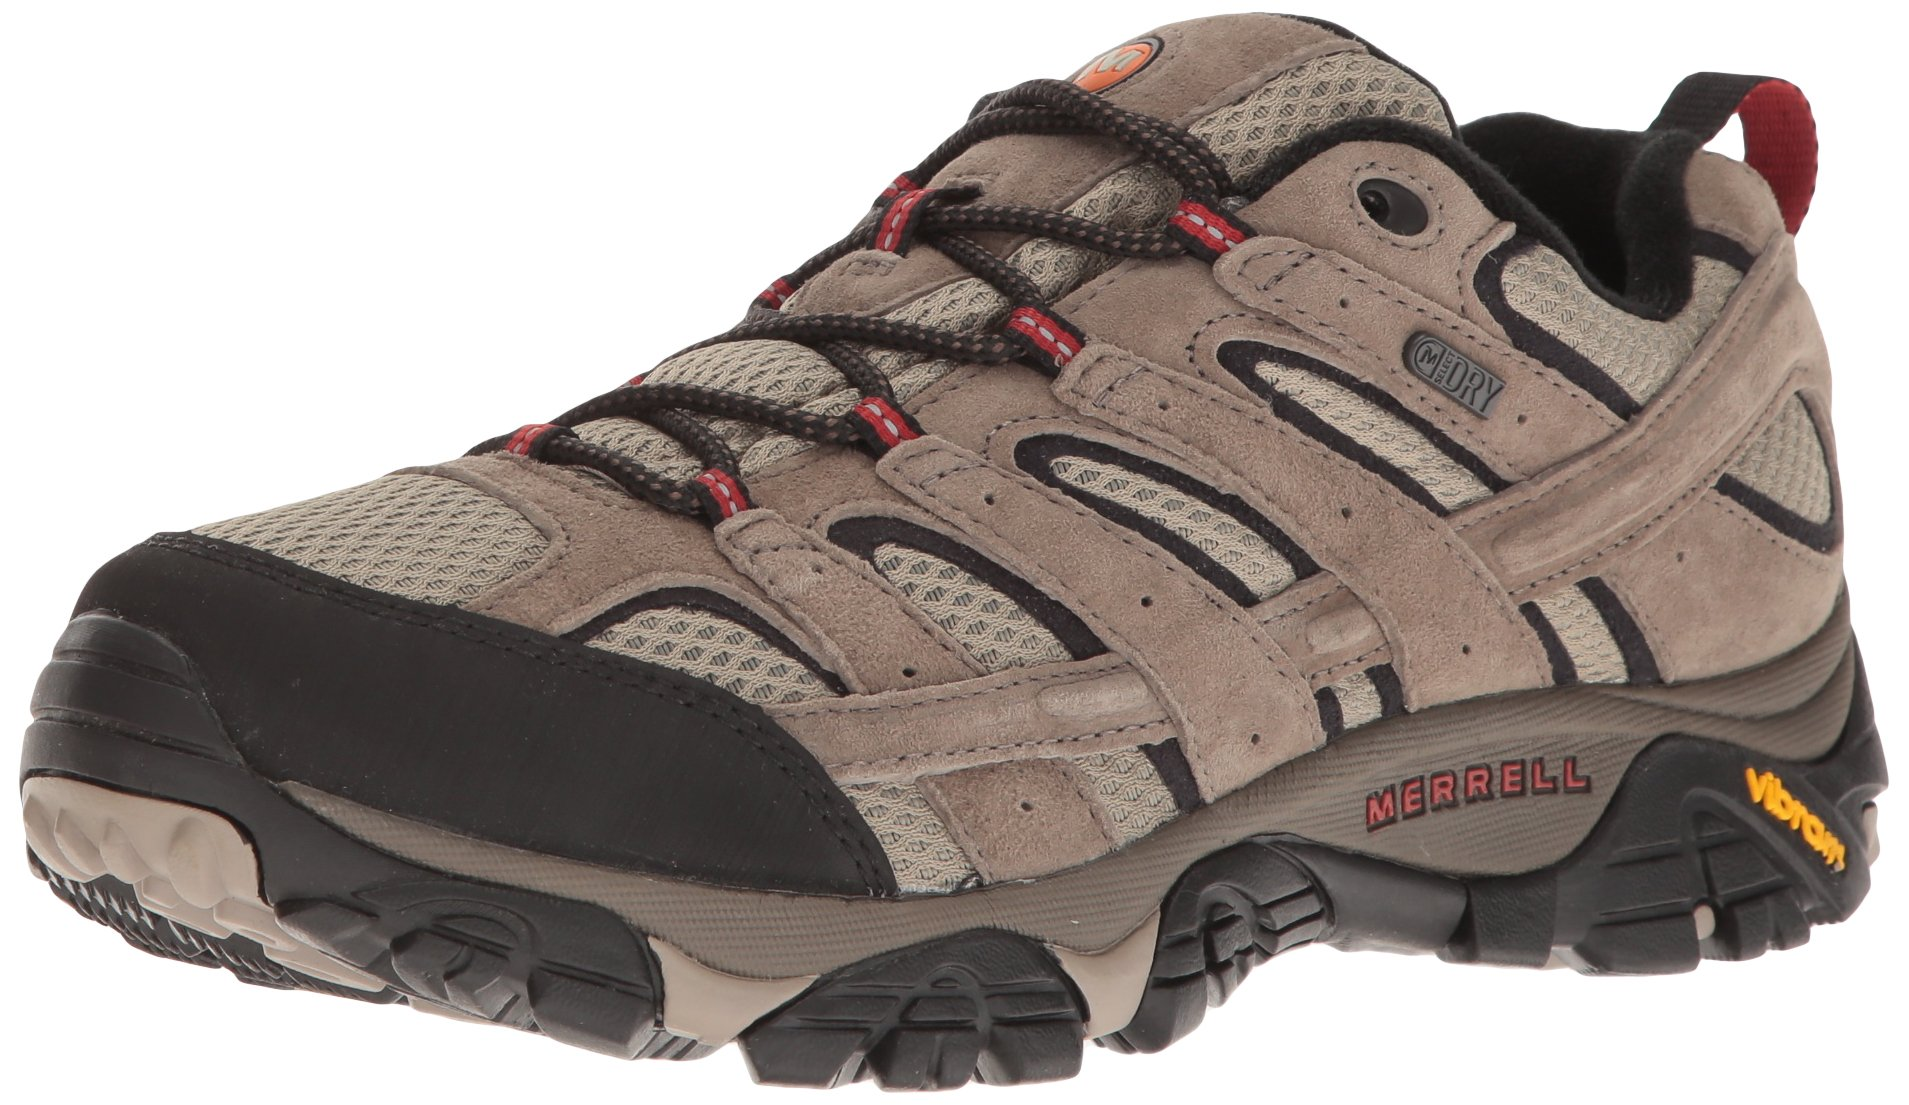 Merrell Men's Moab 2 Waterproof Hiking Shoe, Bark Brown, 11.5 M US by Merrell